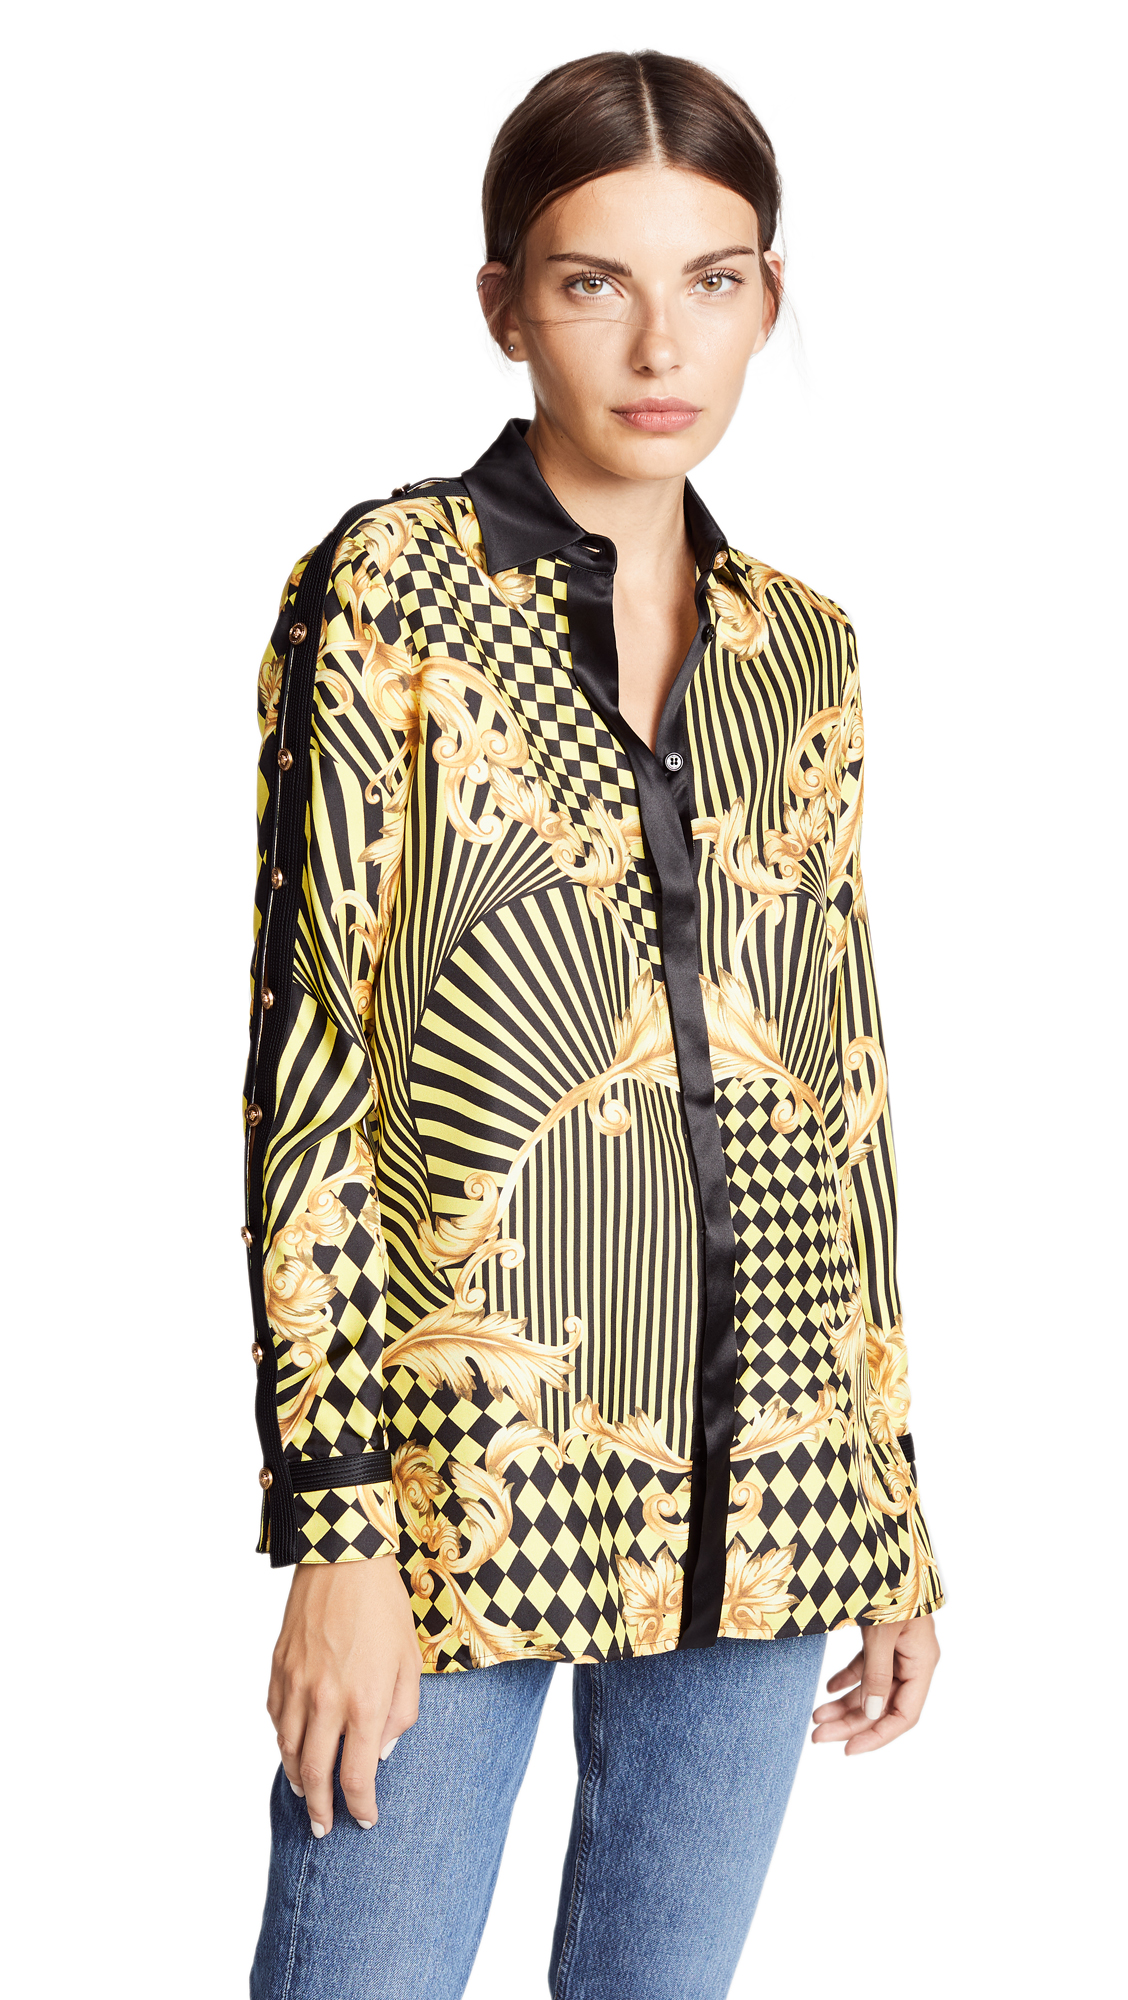 Versace Print Button Shoulder Blouse In Yellow/Black